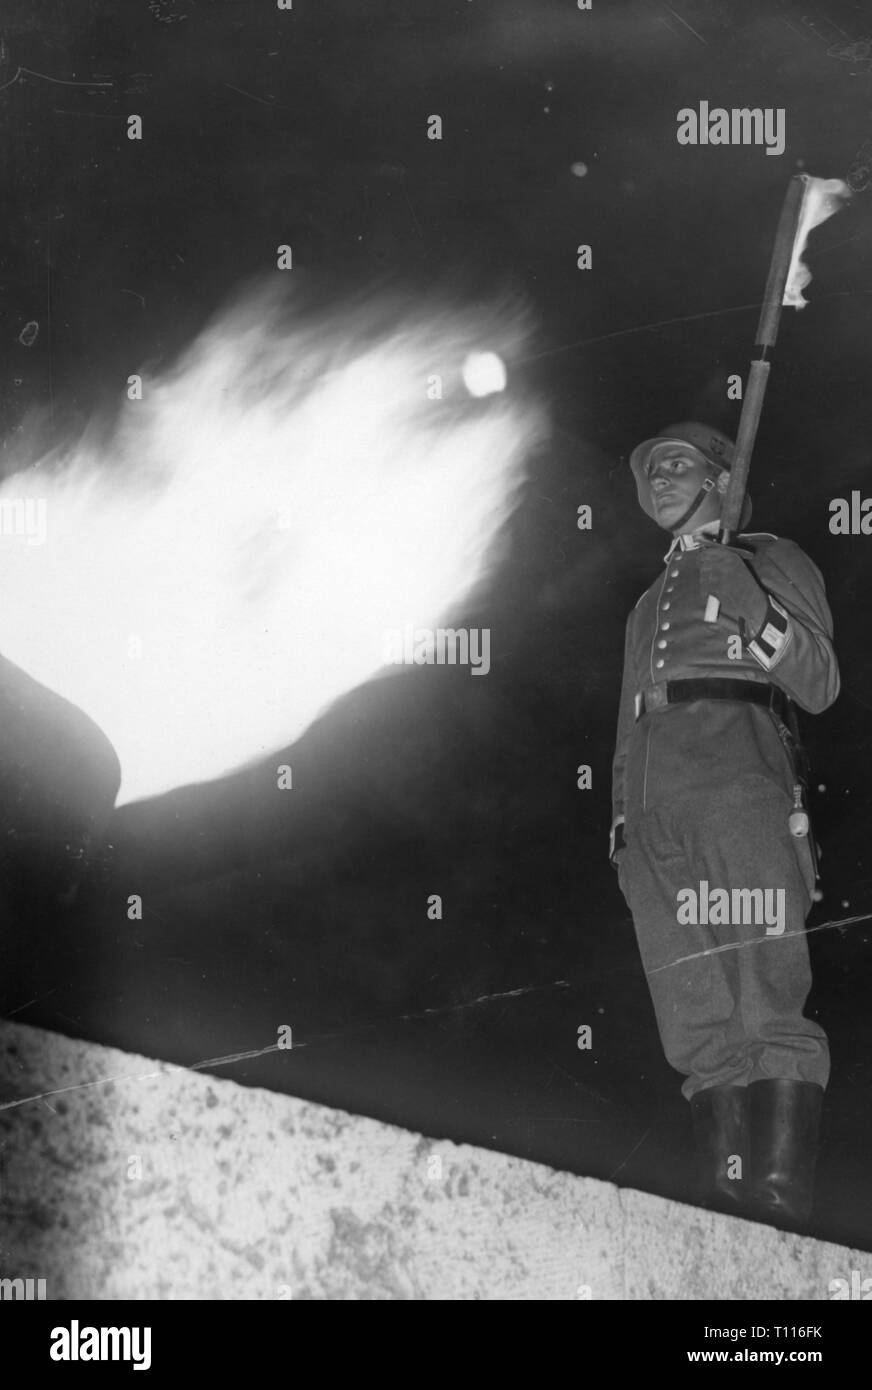 Nazism / National Socialism, military, army, guard with torch on the ocassion of the visit of Benito Mussolini, Olympic stadium, Berlin, 29.9.1937, Additional-Rights-Clearance-Info-Not-Available - Stock Image